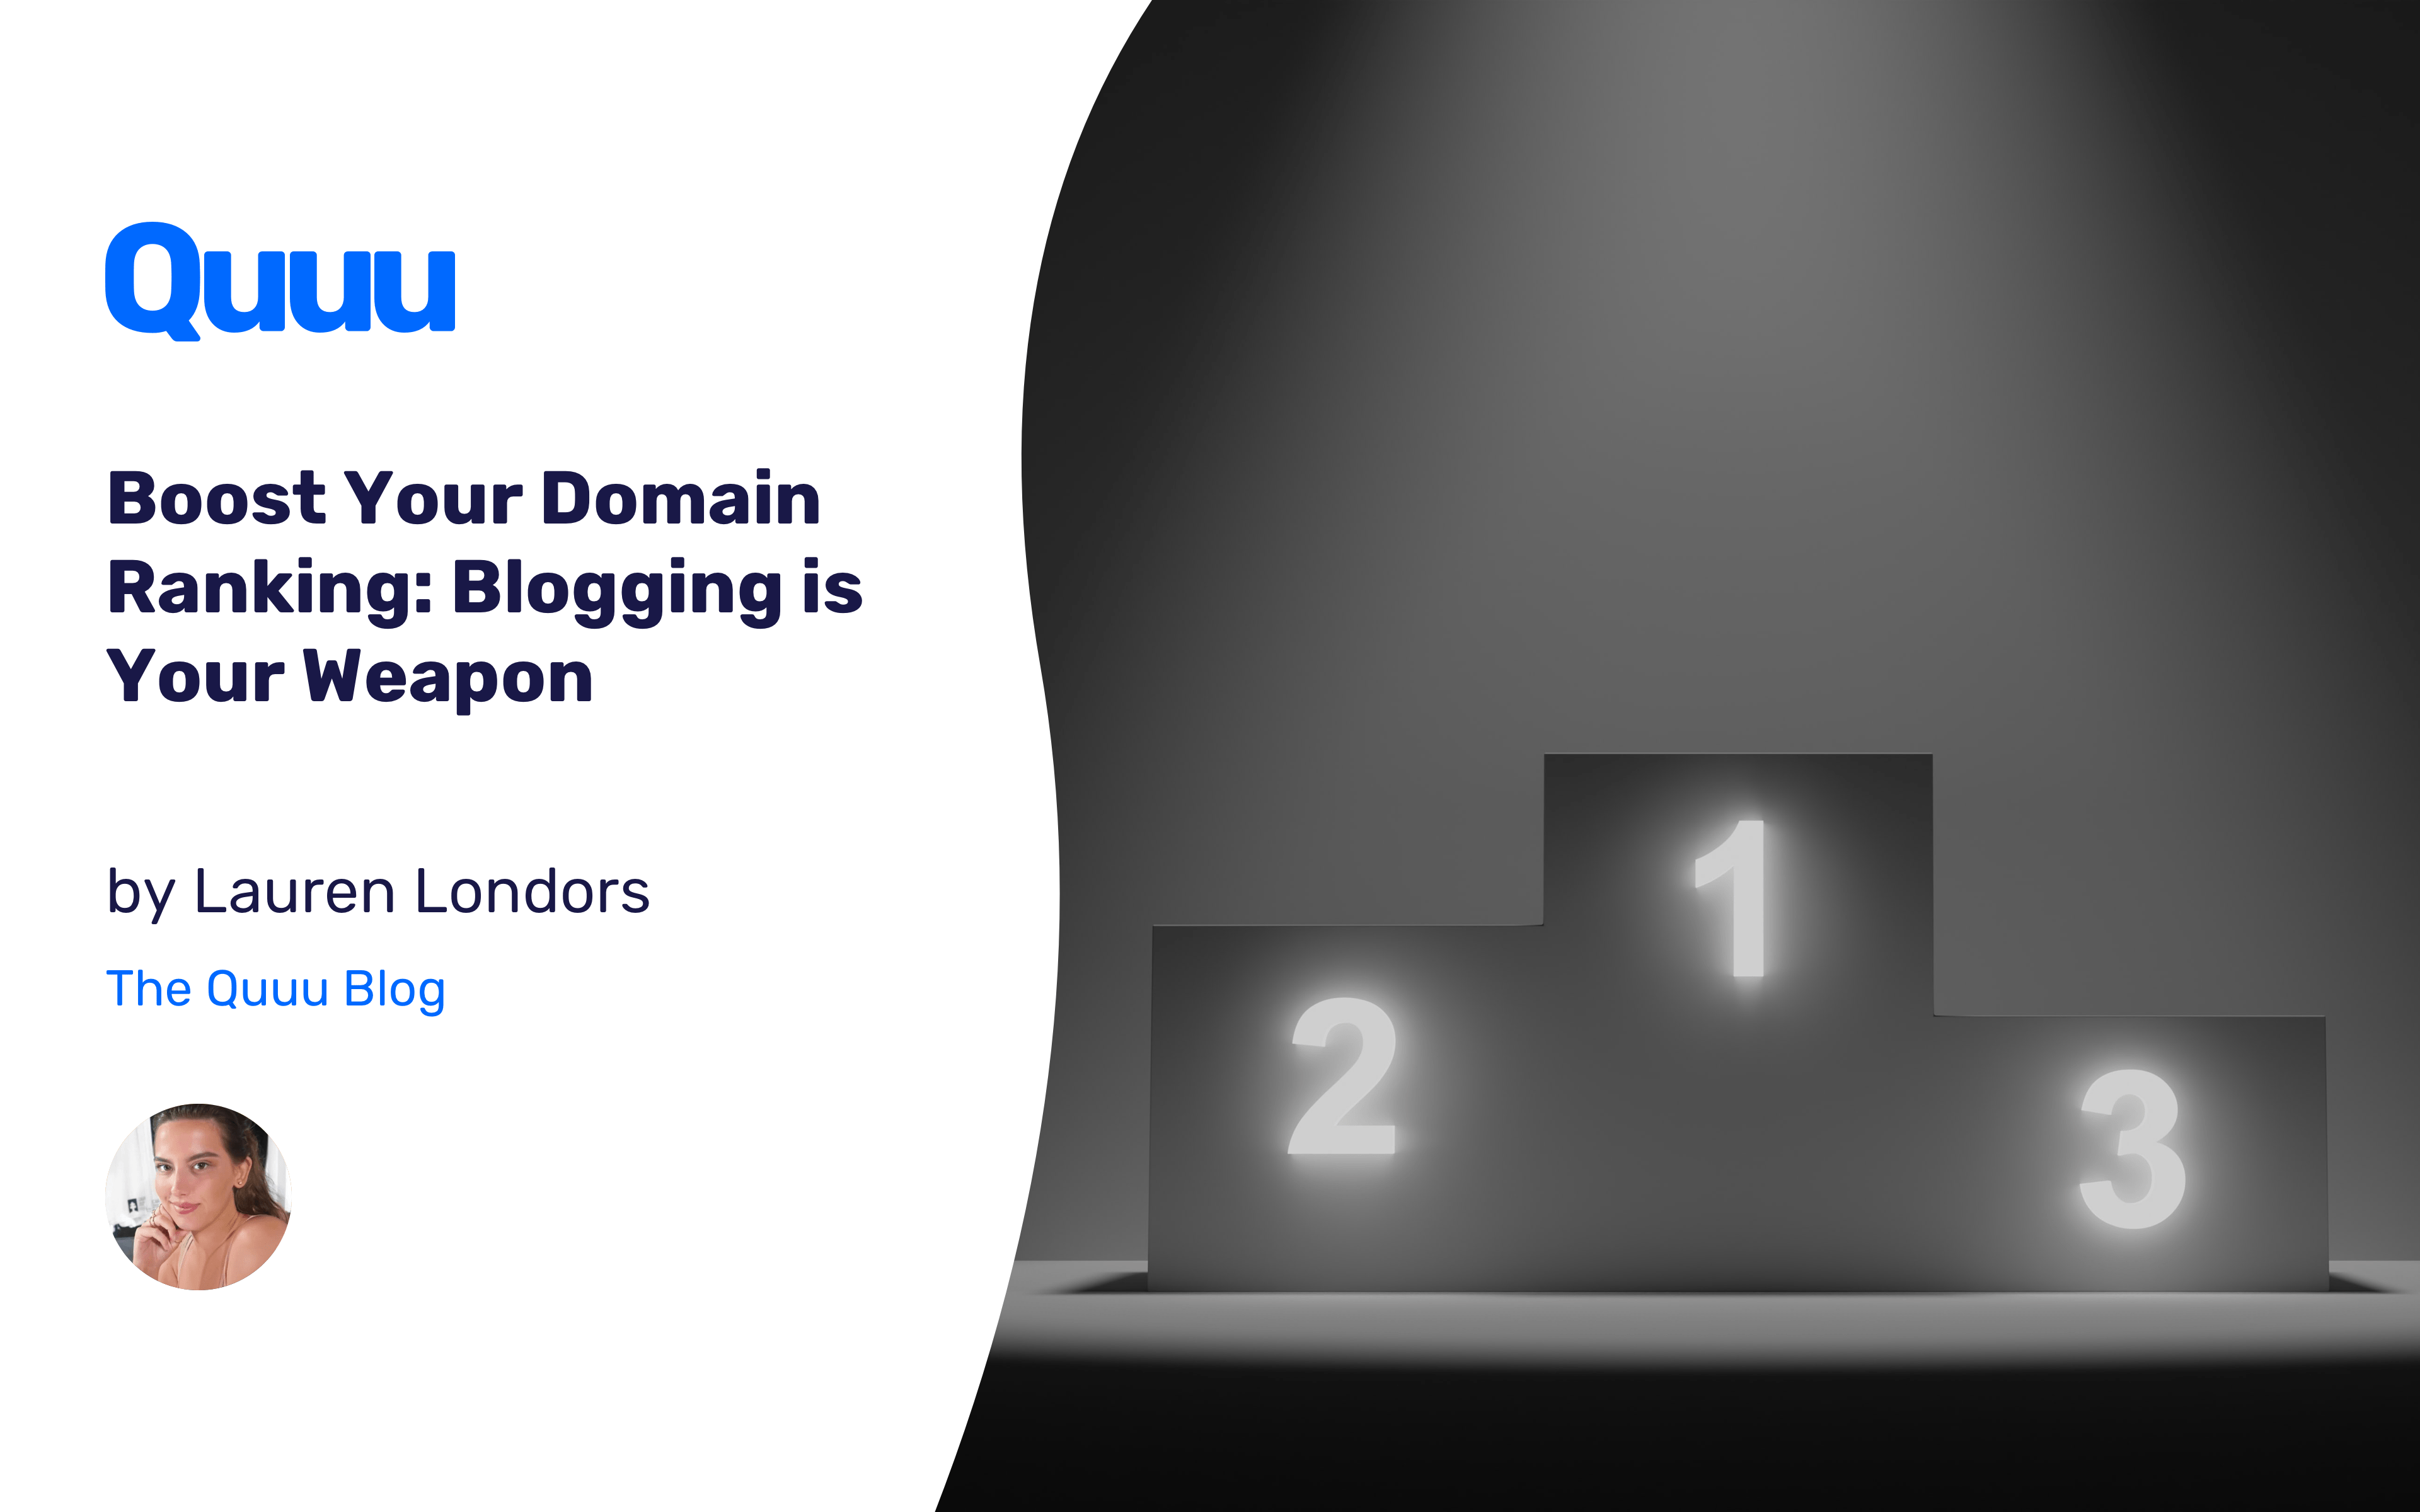 Boost Your Domain Ranking: Blogging is Your Weapon